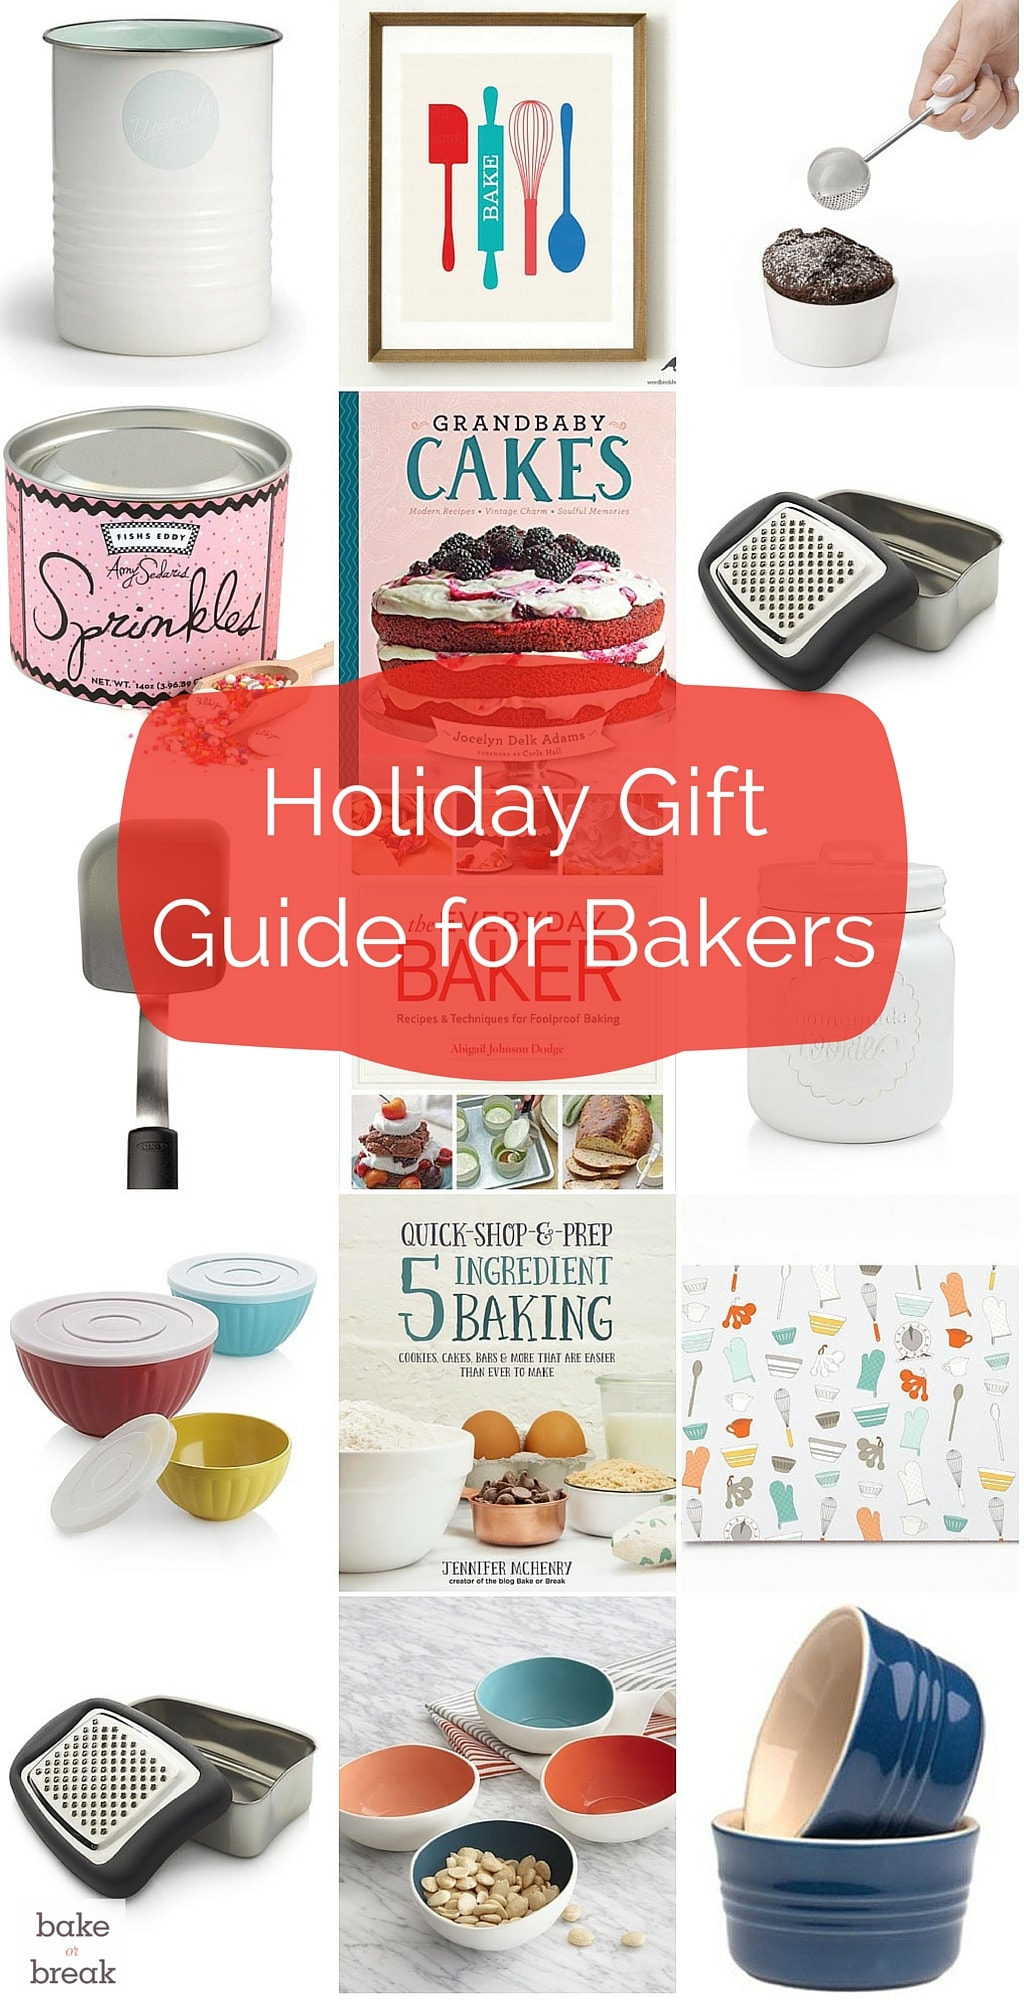 Find great gifts for the baker on your shopping list with these fun gift ideas! - Bake or Break